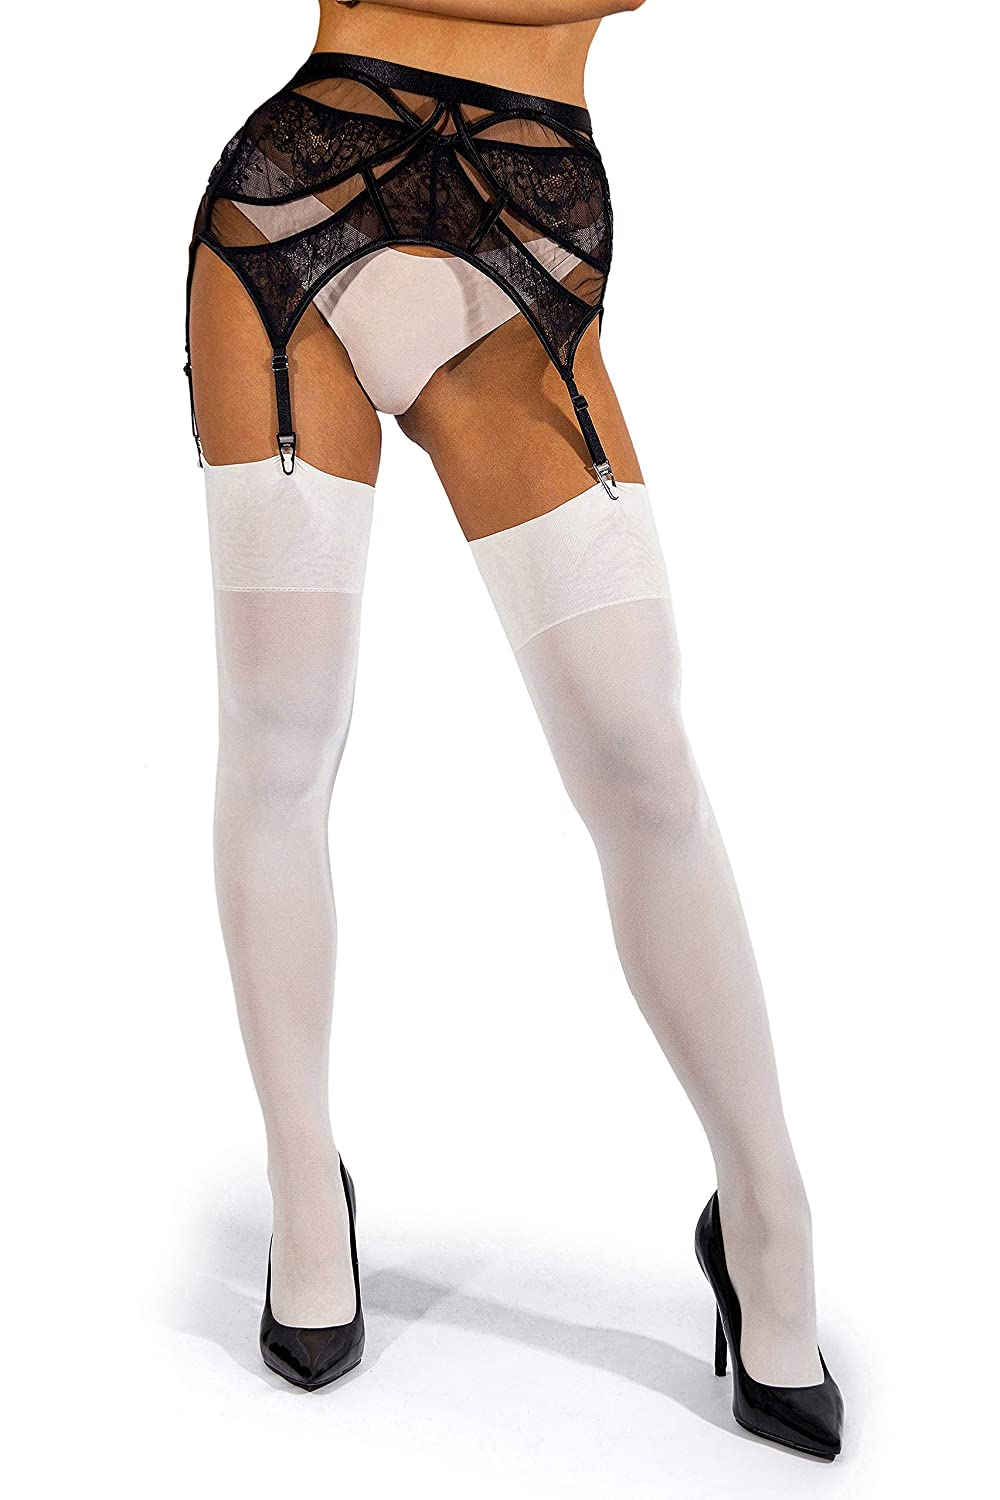 sofsy Opaque Thigh High Stockings 60 Denier Made in Italy